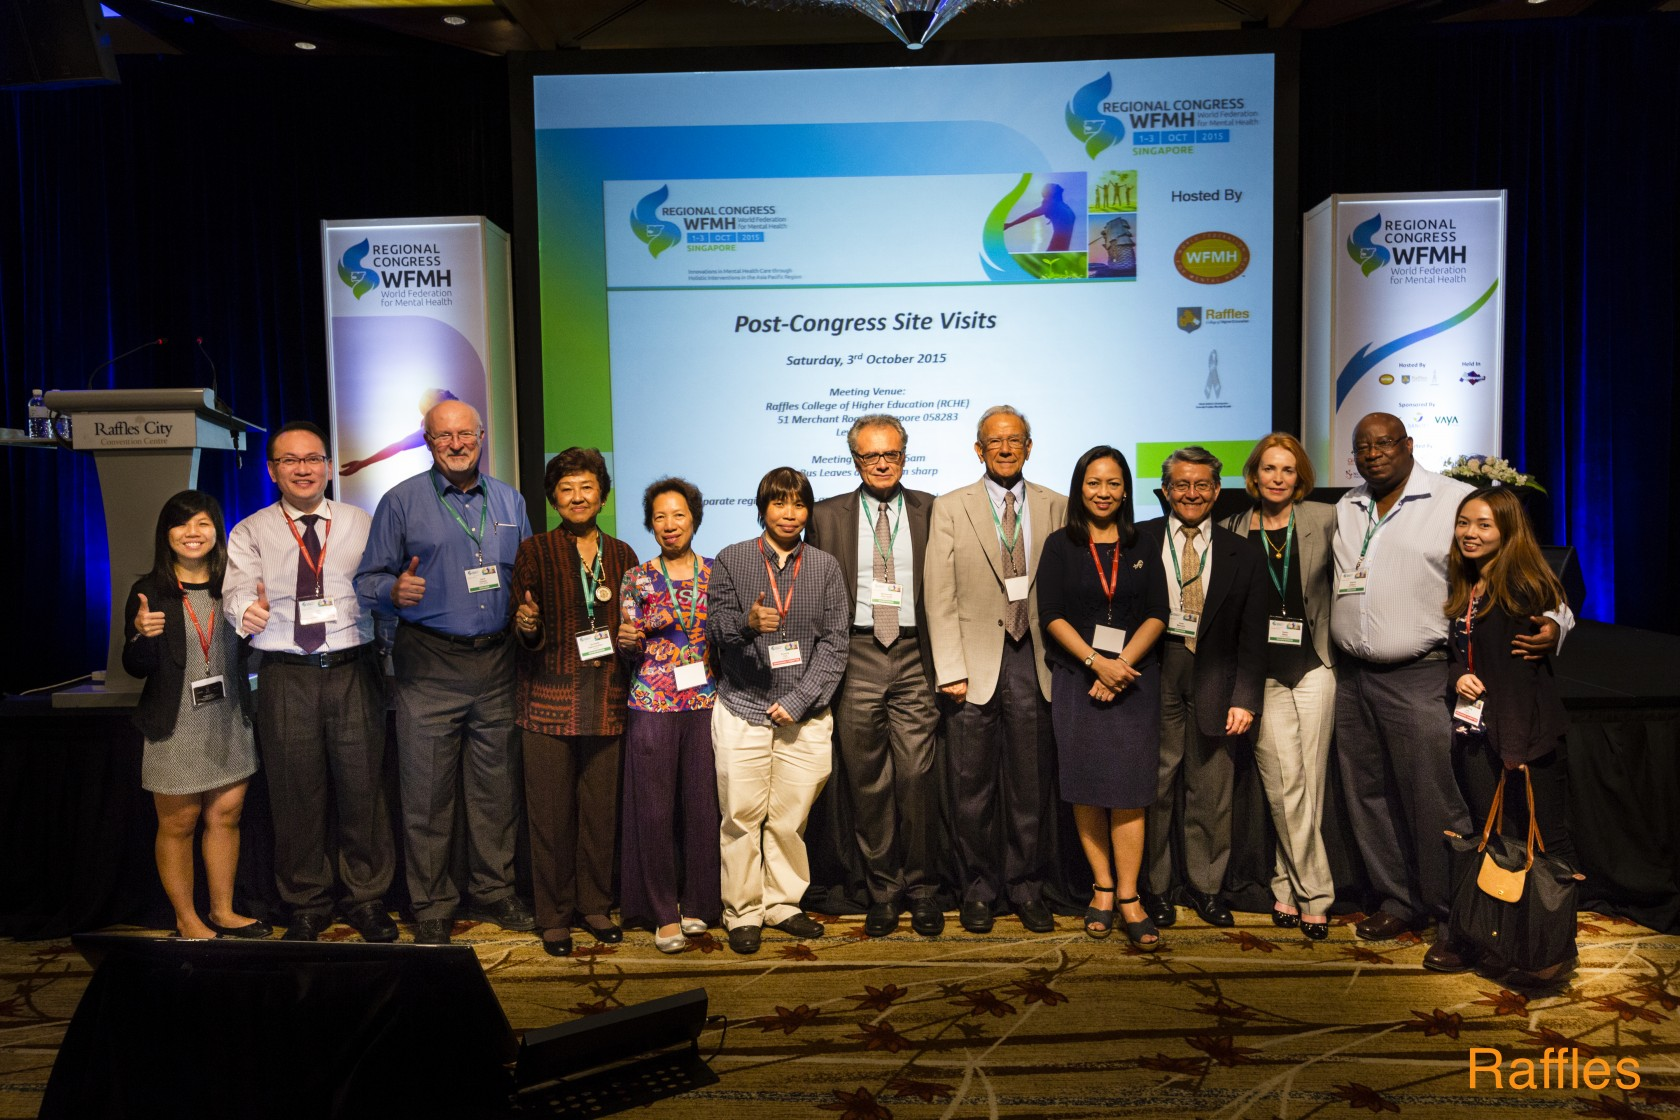 DR13078 A Successful Regional Congress for World Mental Health